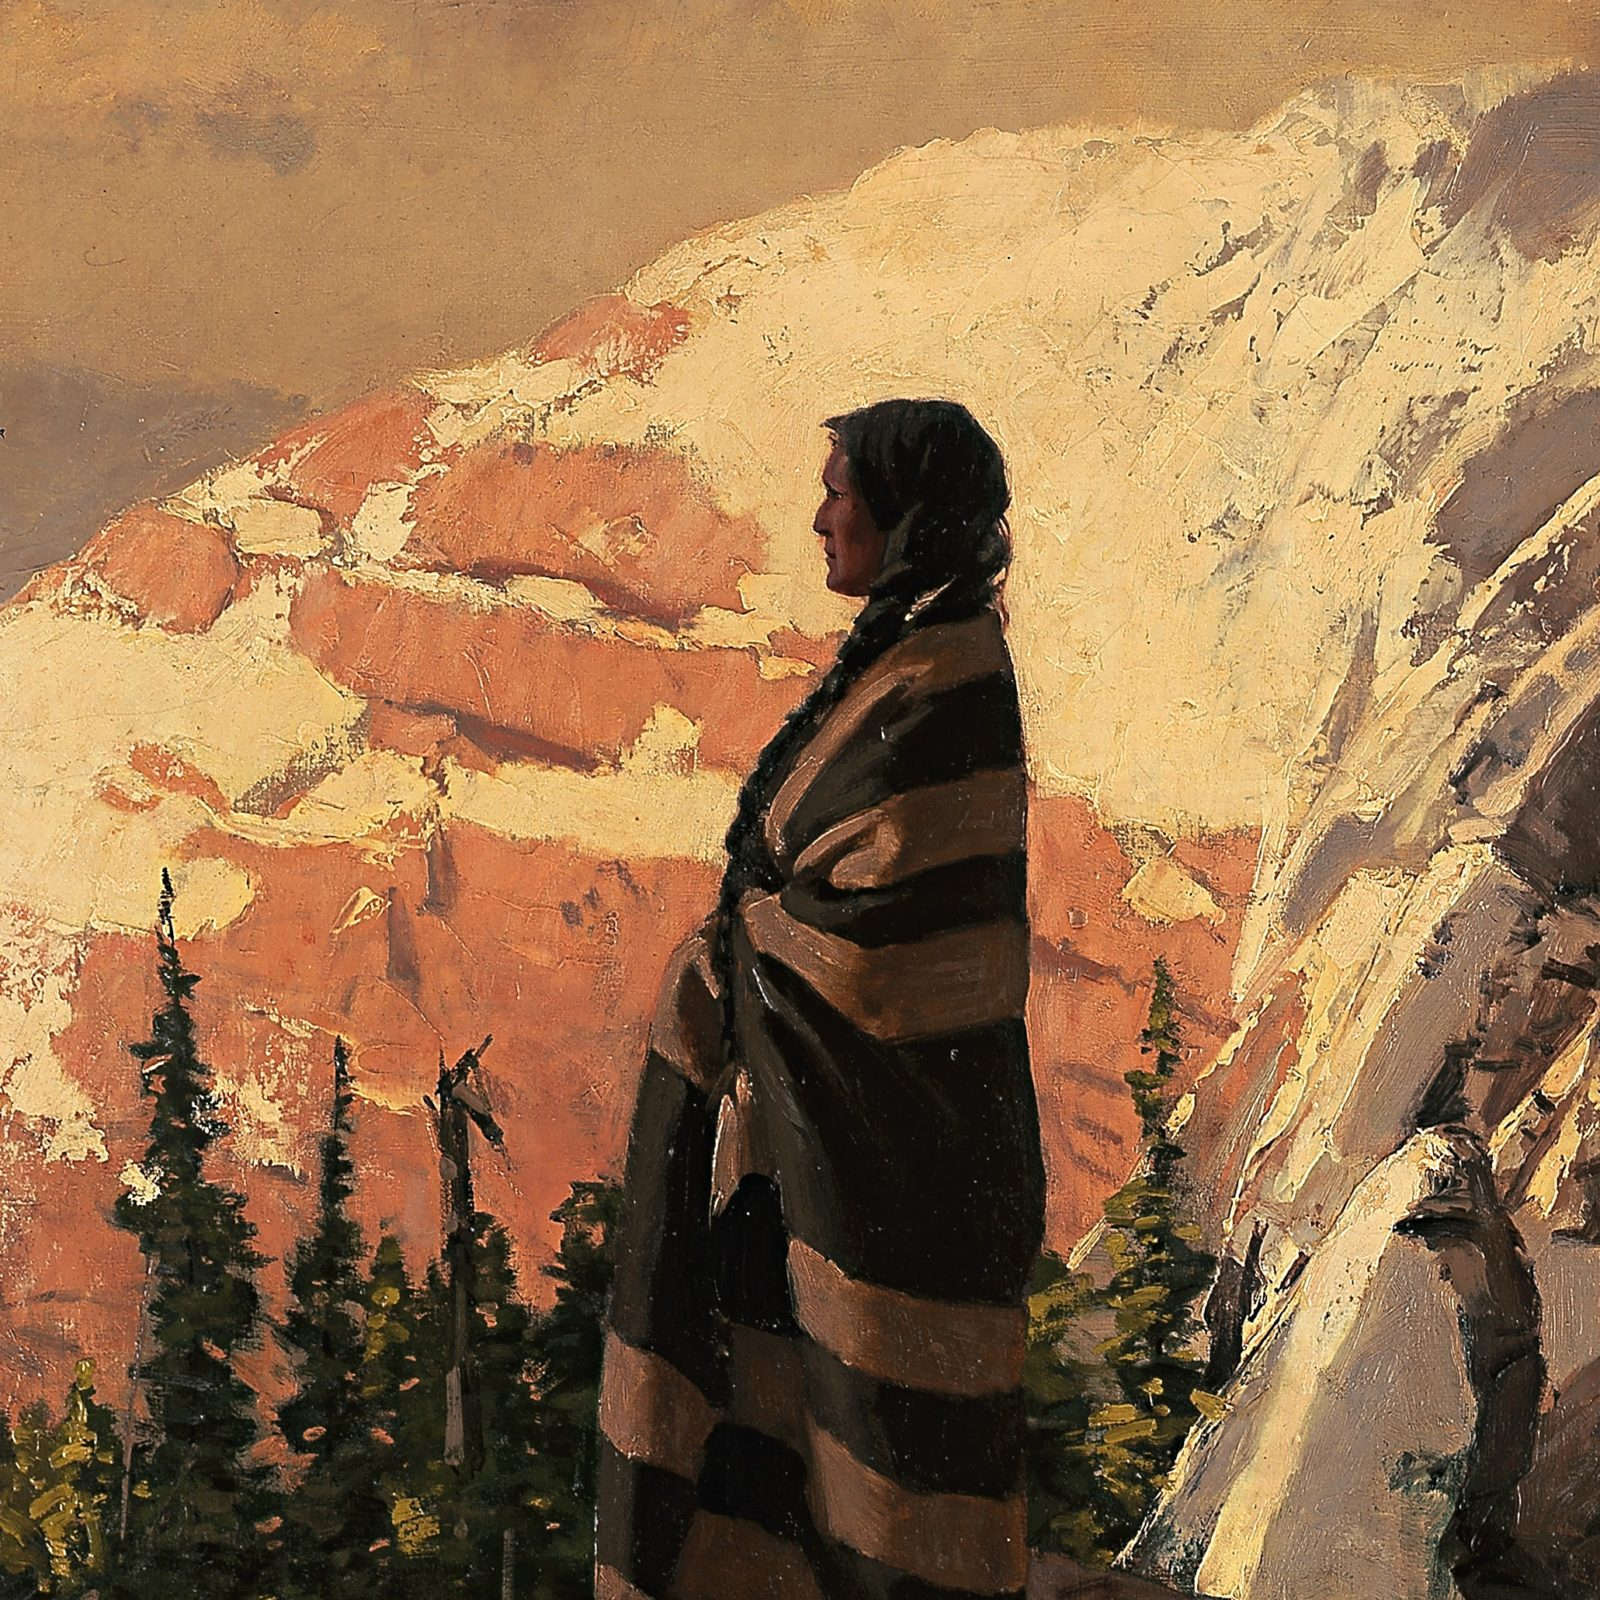 A painting of a Native American, wrapped in a blanket, gazing out over mountains and woods